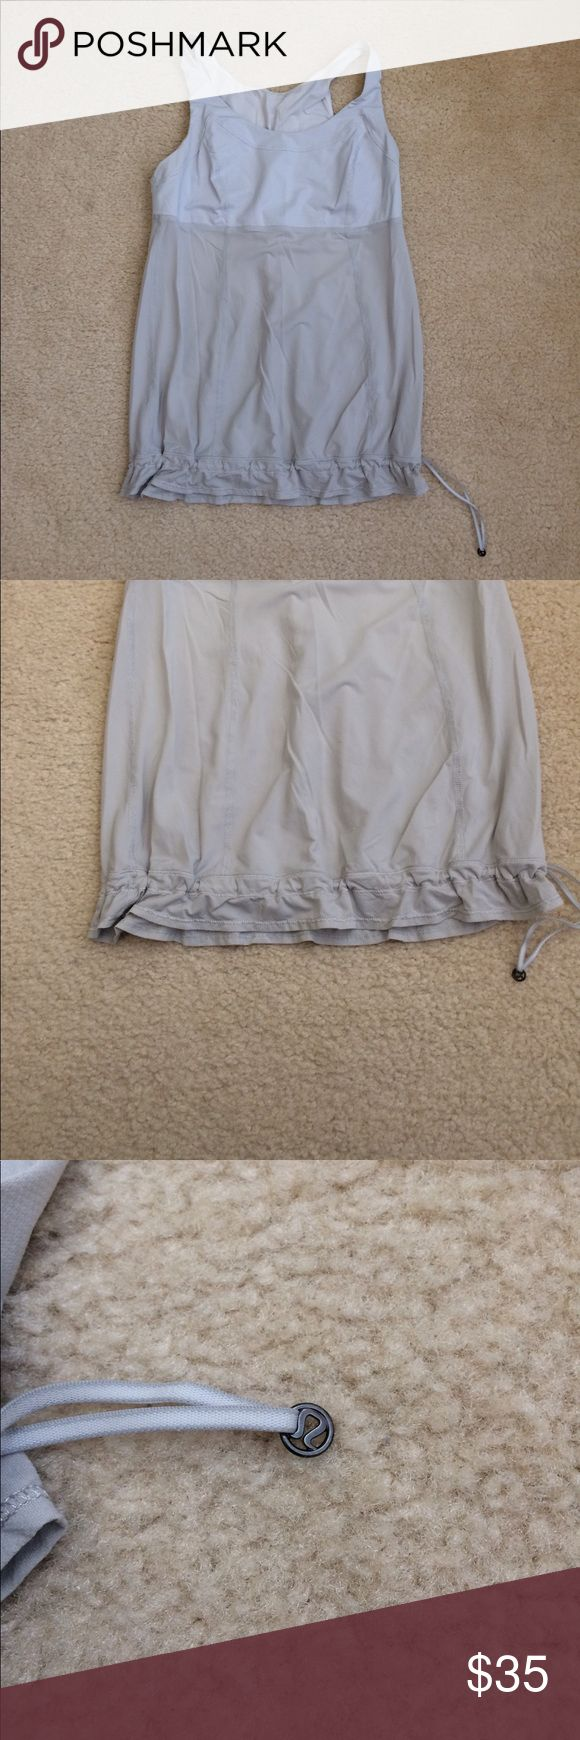 Lululemon loose-fit tank Lululemon tank • loose-fit • drawstring hem • gray bodice • blue striped bust area • Sz 10 • stain on back • great overall condition • fast same/next day shipping • BUNDLE & BUY IT NOW!!! lululemon athletica Tops Tank Tops